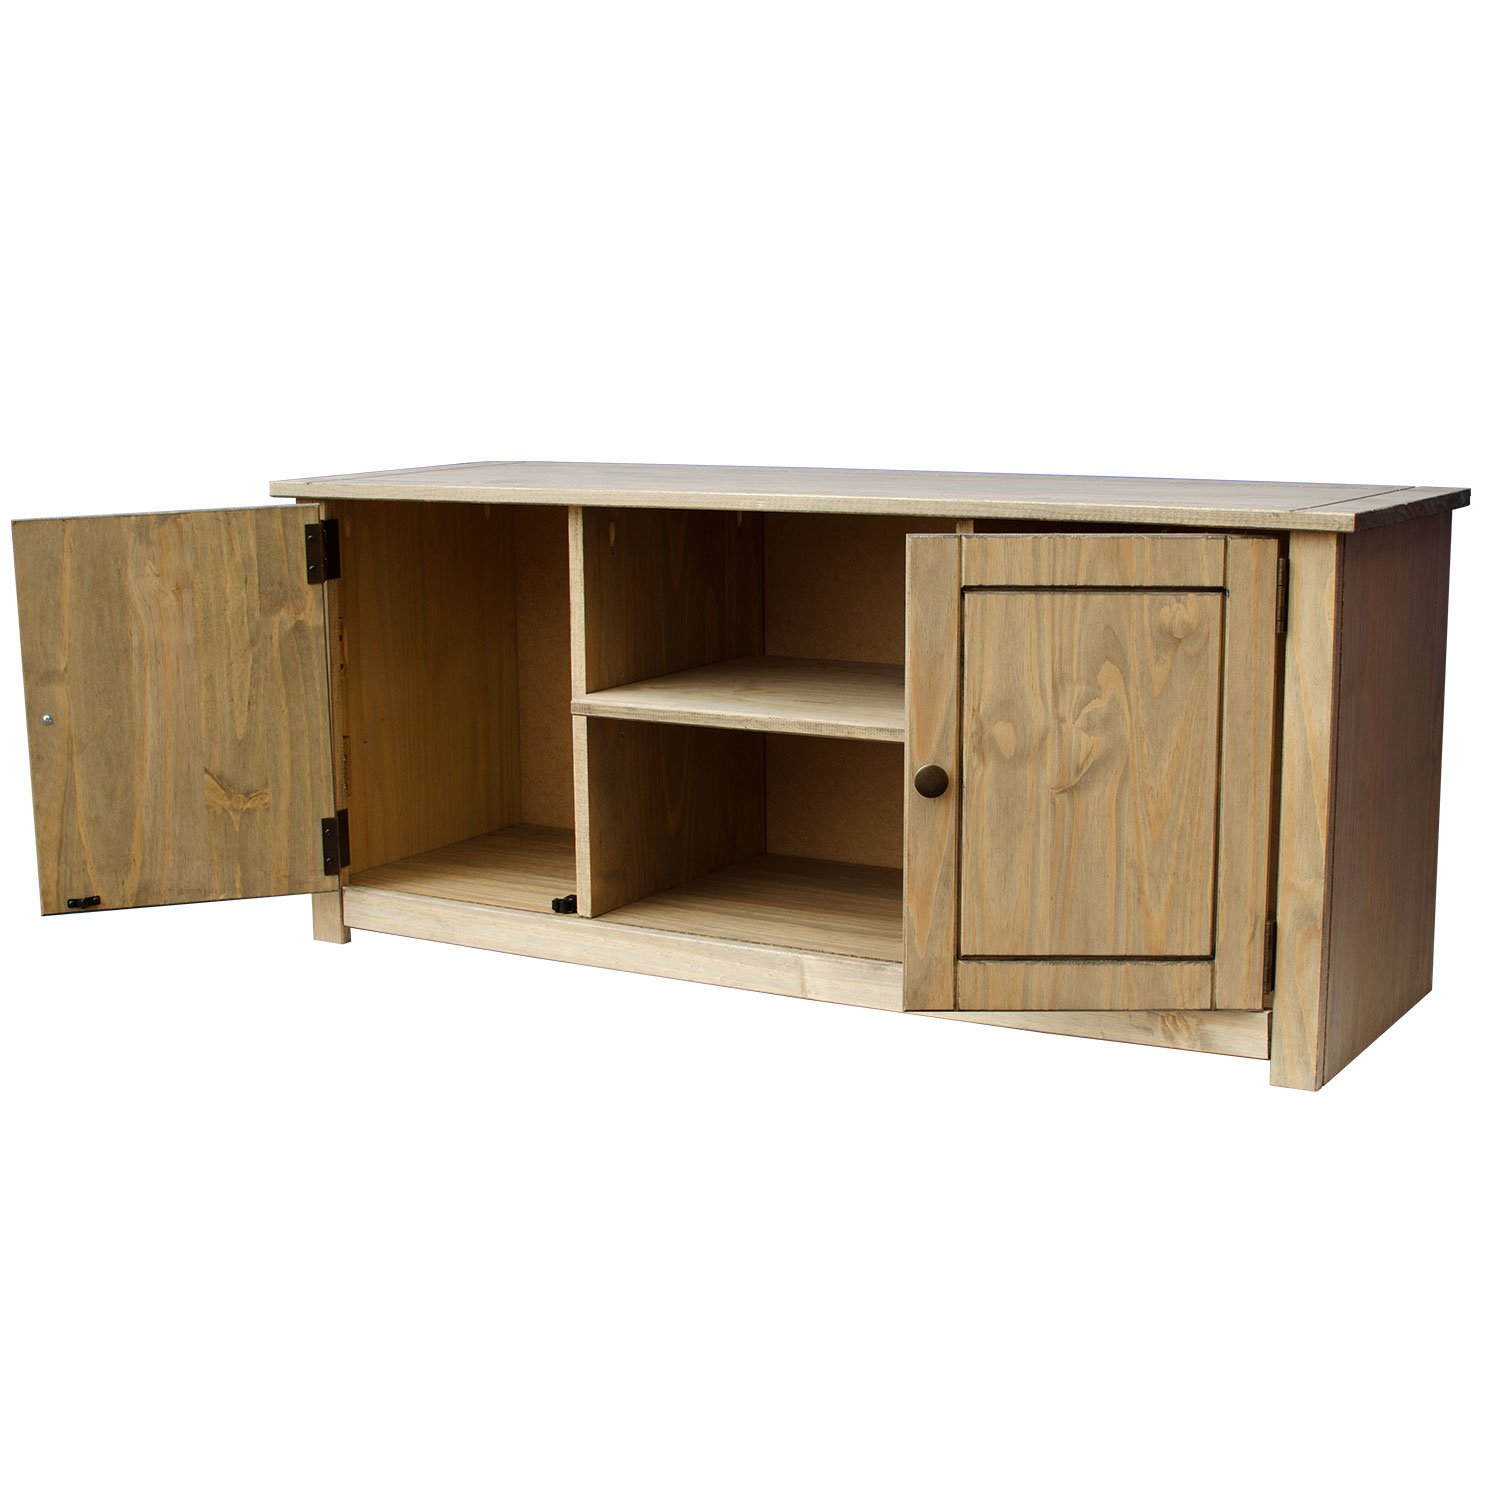 Solid pine television unit cabinet stand wood media for Tv and media storage units